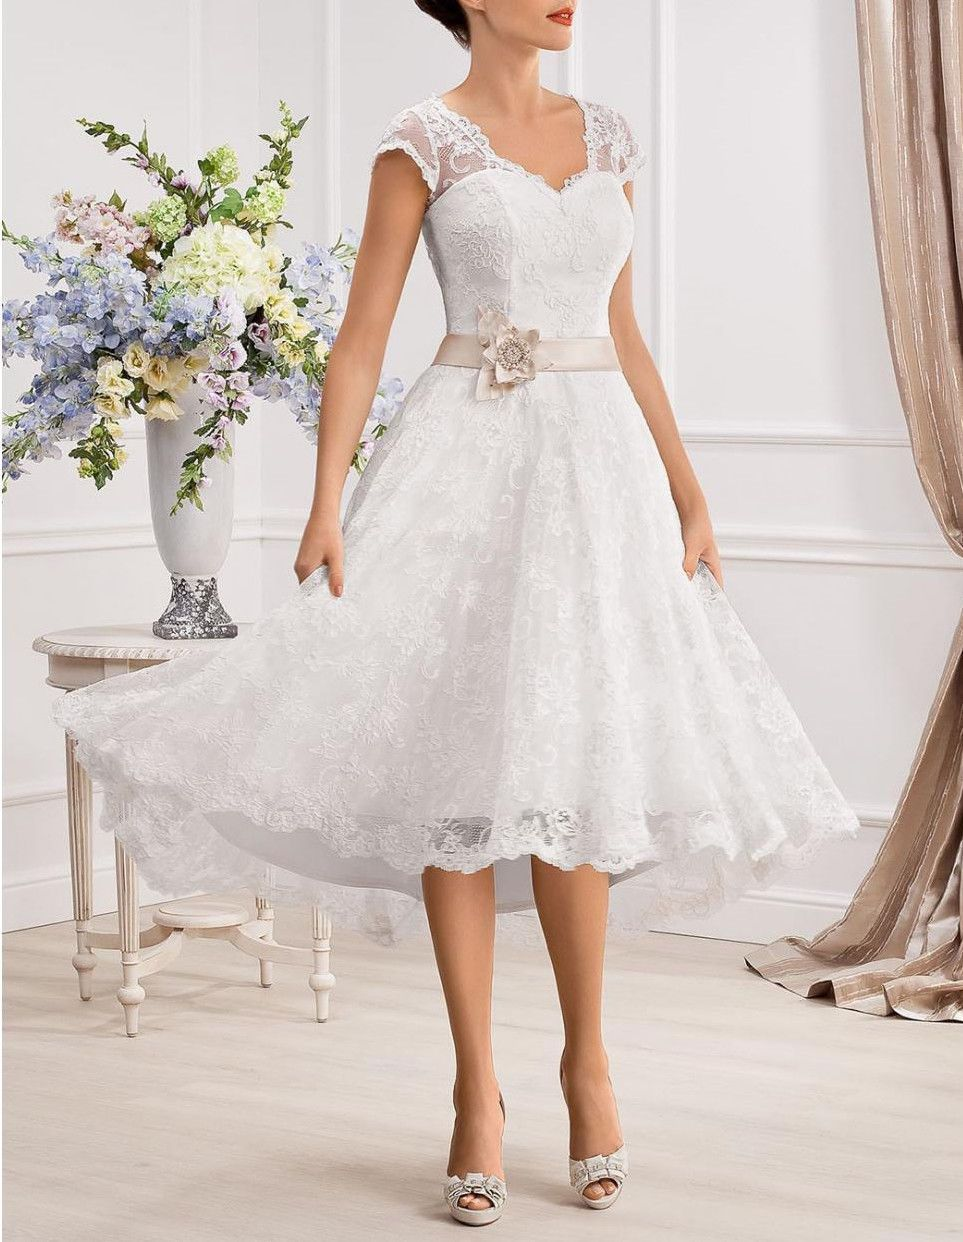 Size 6 wedding dress  Stock New WhiteIvory Lace Short Wedding Dress Bridal Gown Size